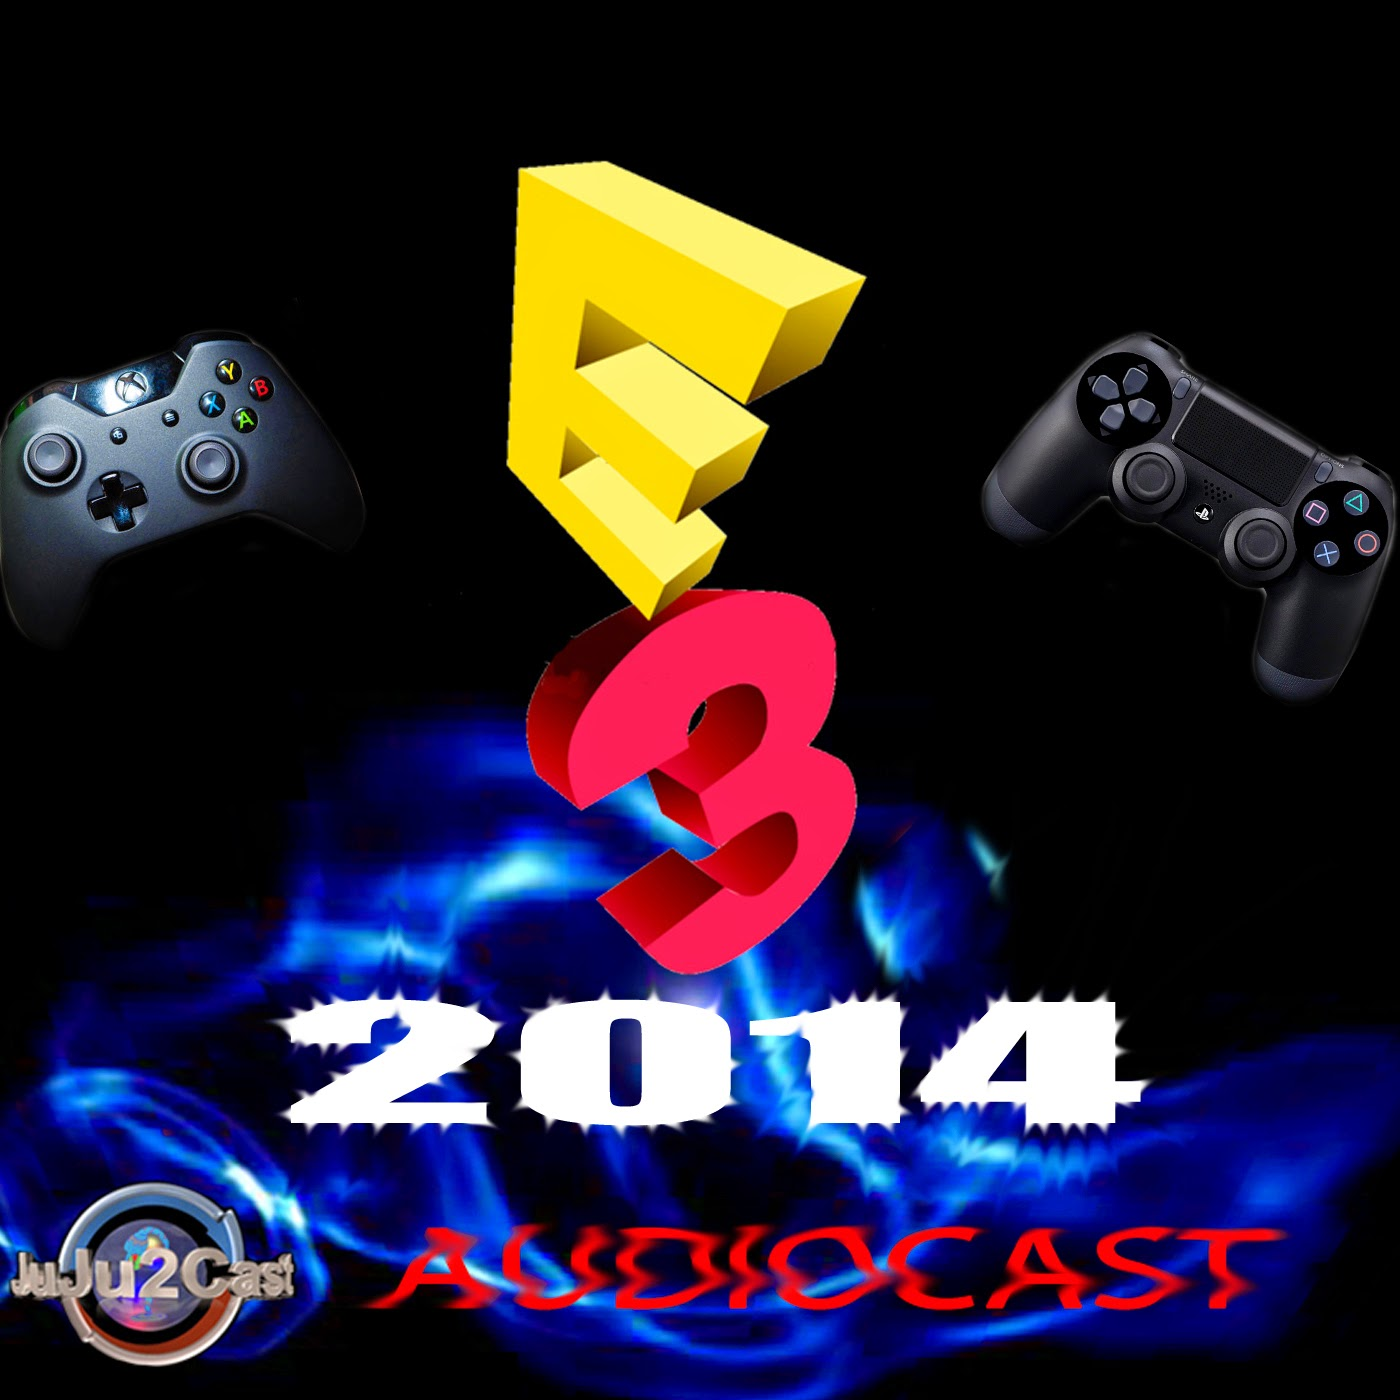 E3 Gamer PodCast